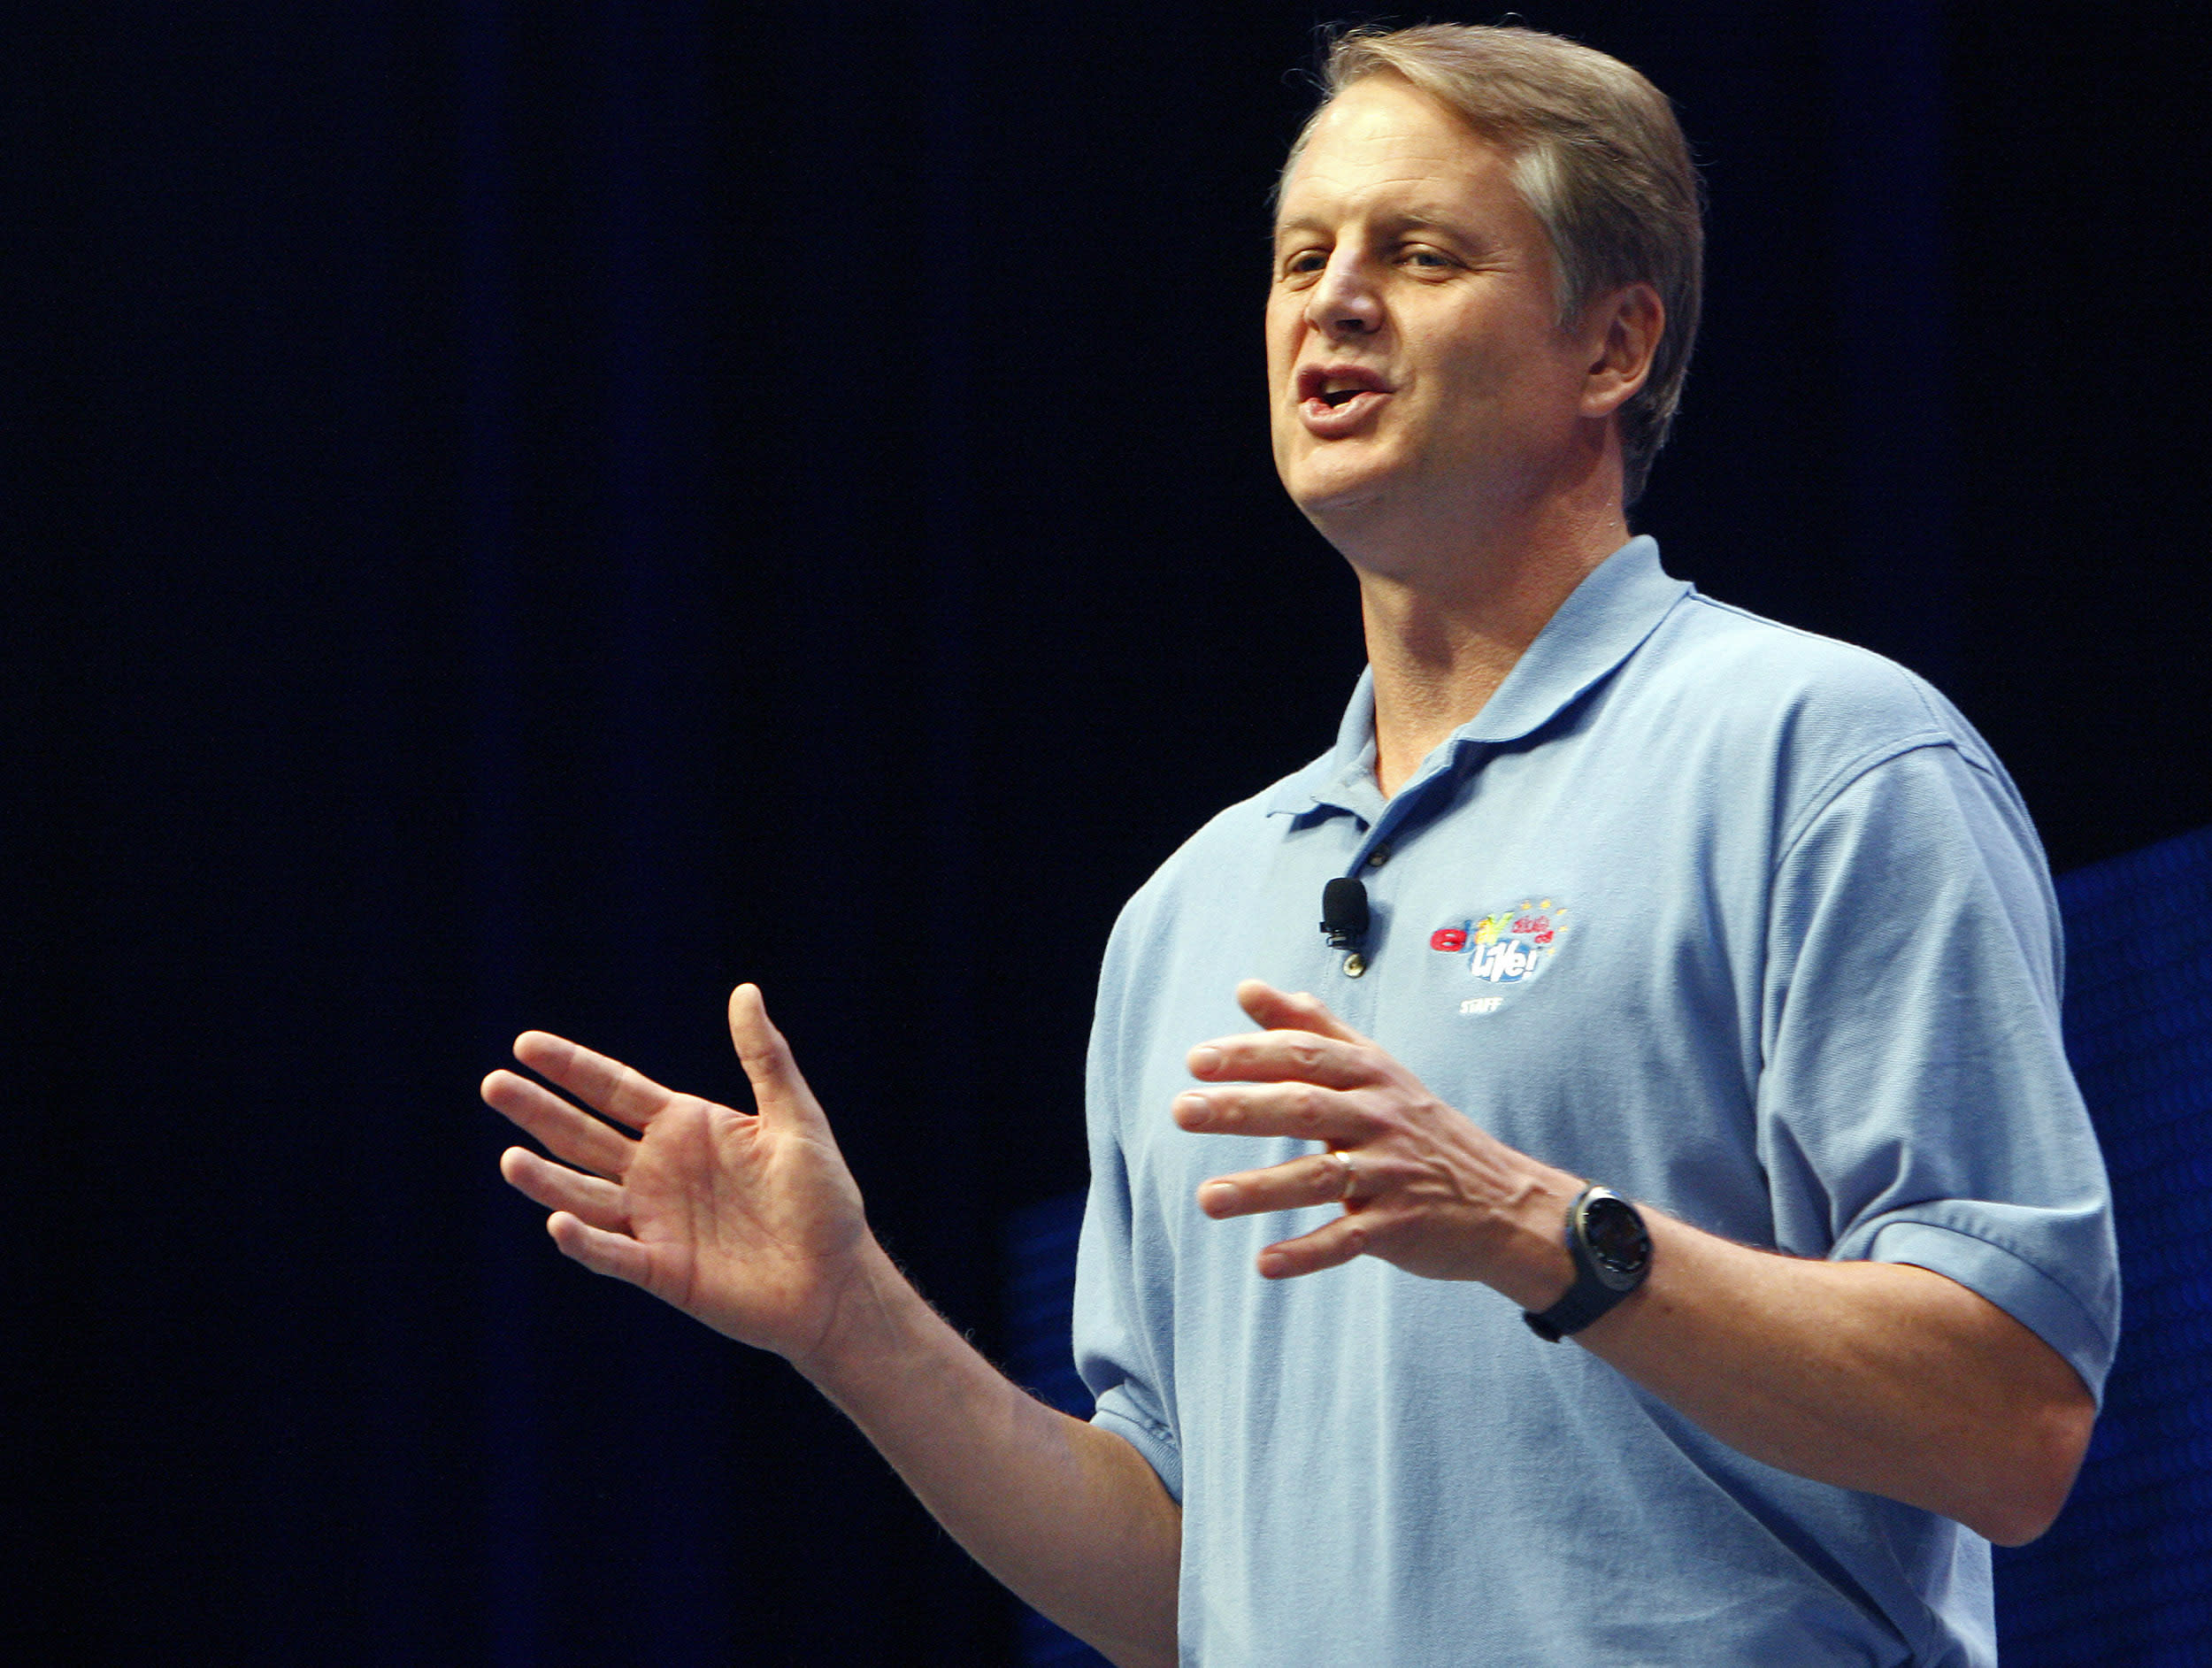 Amazon, Google, and Uber are fundamentally misunderstood, says ServiceNow CEO John Donahoe